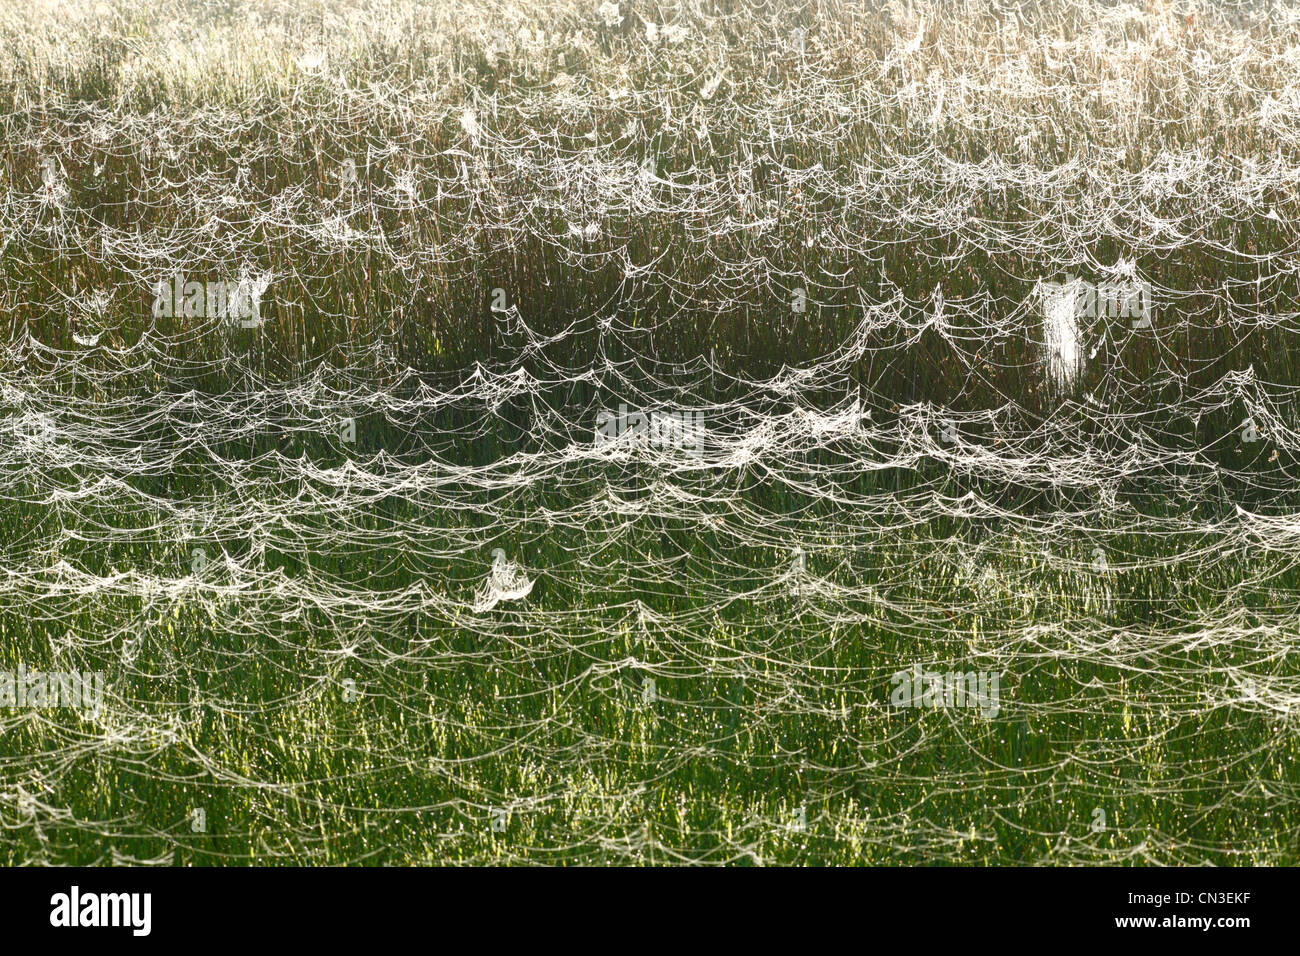 Spiders webs covering rushes on a dewy morning. Powys, Wales, September. - Stock Image